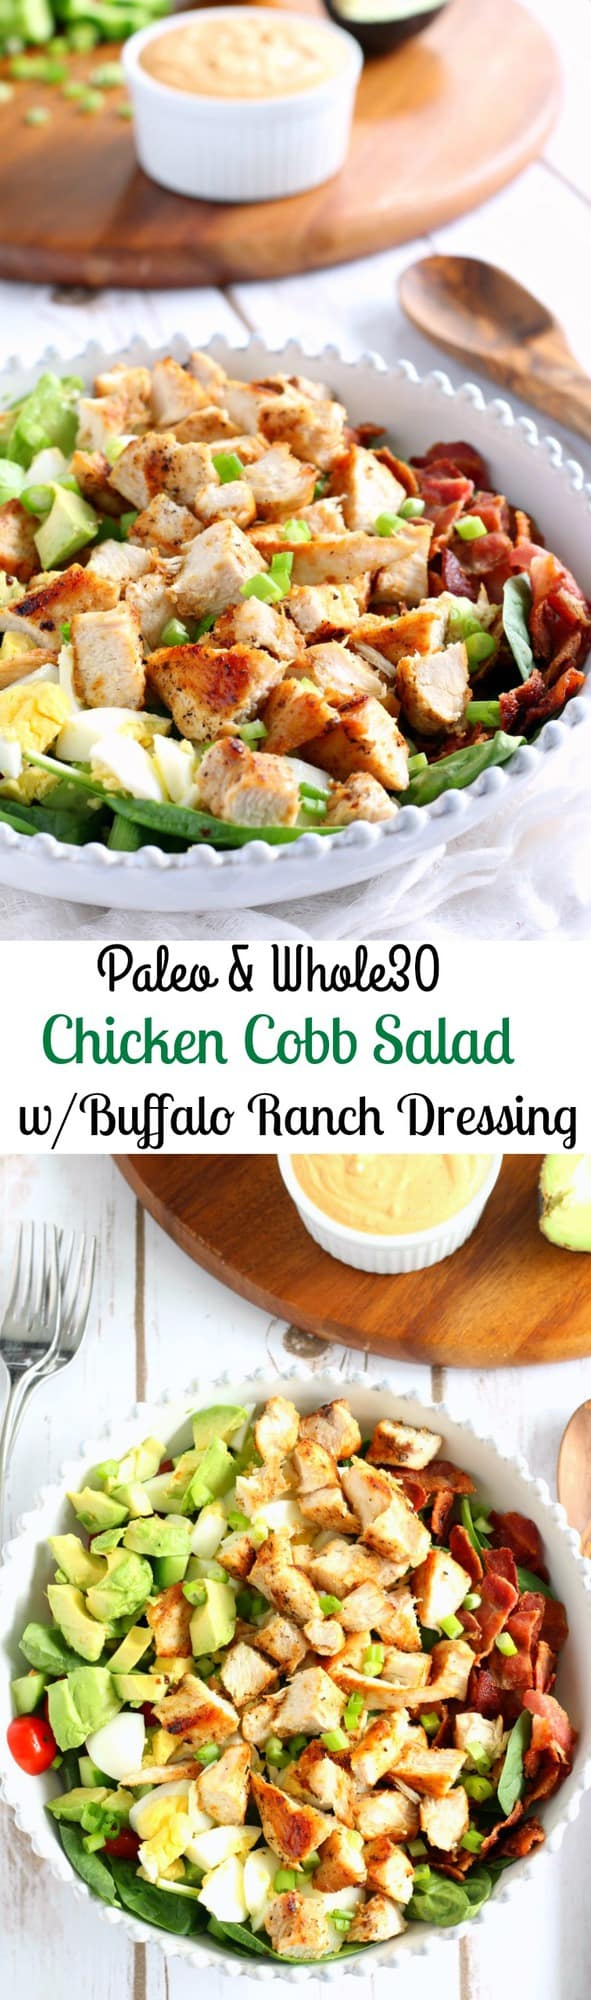 Paleo and Whole30 Chicken Cobb Salad with buffalo ranch dressing - two ways! One with a coconut milk base and the other with a homemade mayo base - both delicious, Paleo and Whole30 friendly